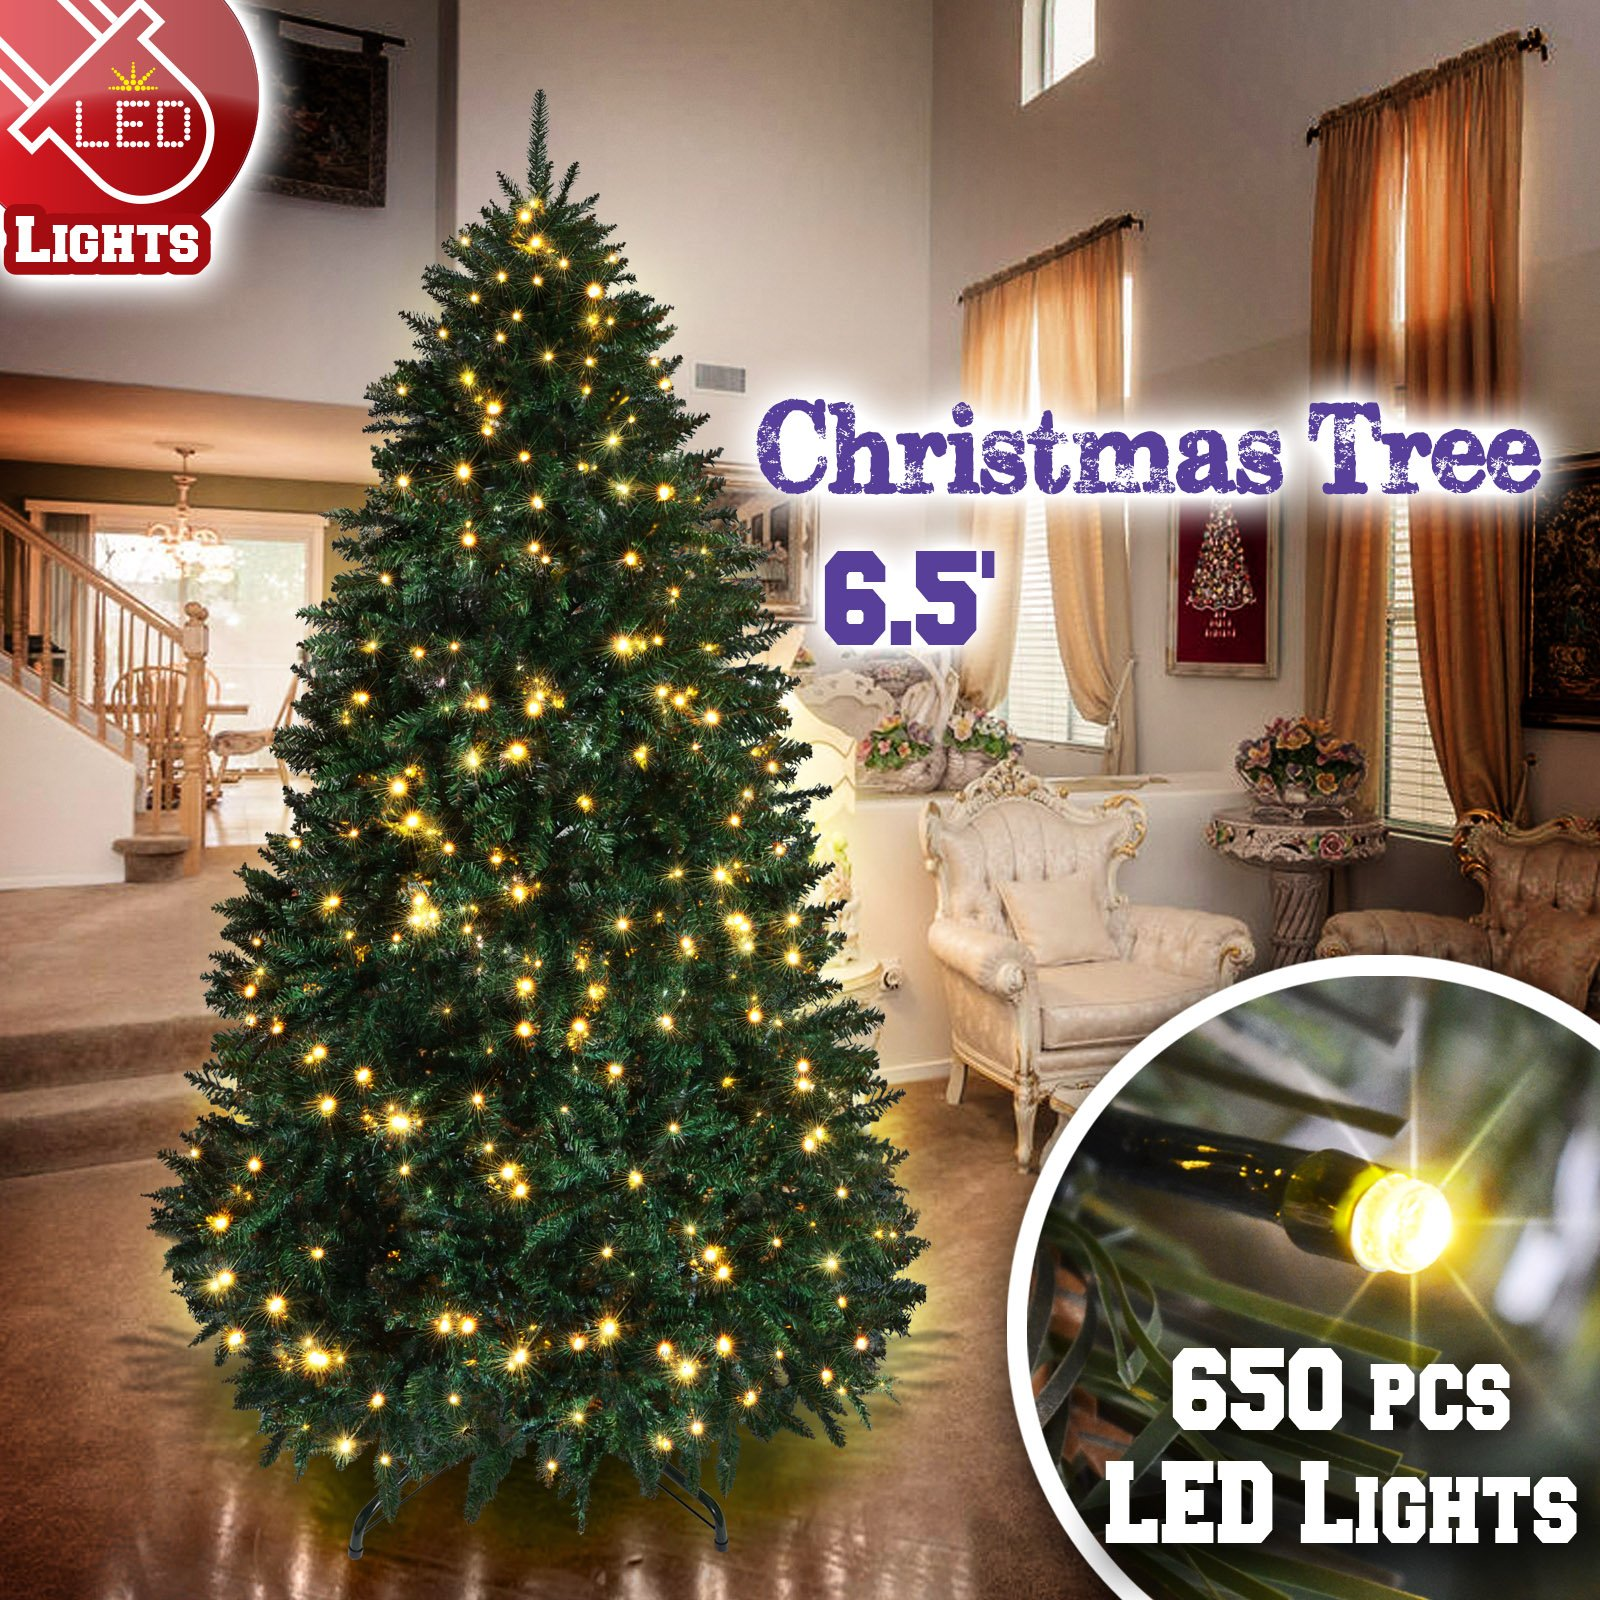 BenefitUSA 6.5 /7 /7.5ft Artificial Christmas Tree with Metal Stand Full Tree Xmas Holiday (6.5' with 650 Clear Lights and 1880 tips)